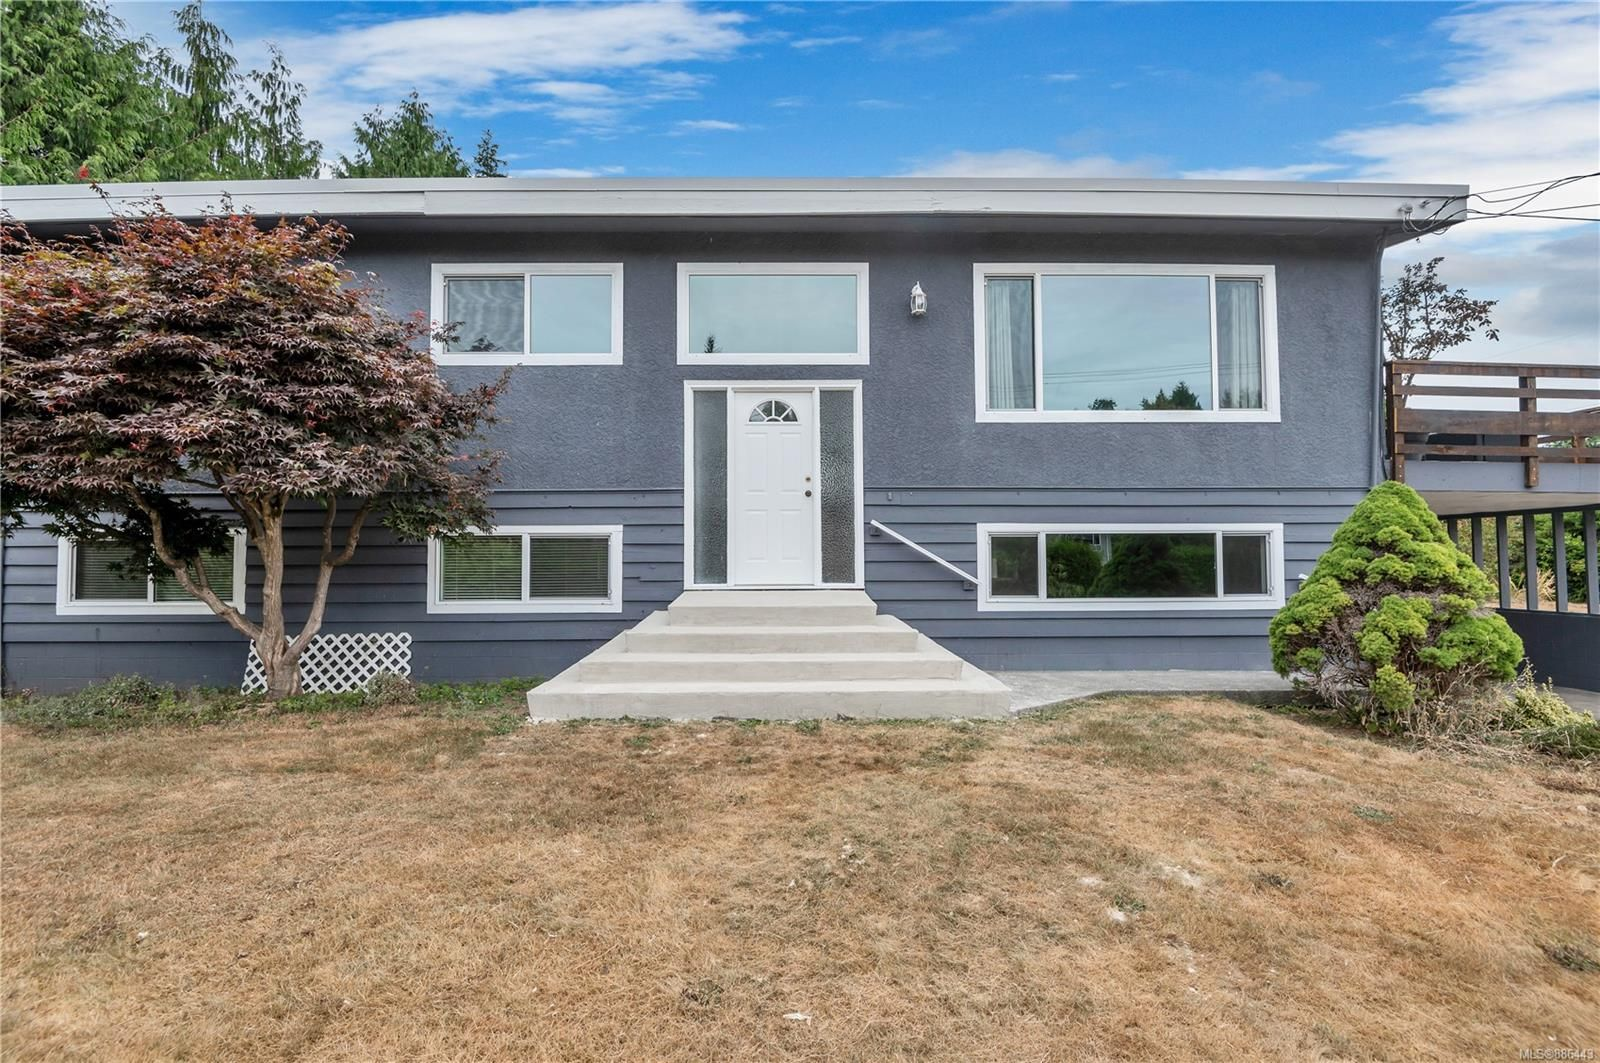 Main Photo: 90 Petersen Rd in : CR Campbell River Central House for sale (Campbell River)  : MLS®# 886443